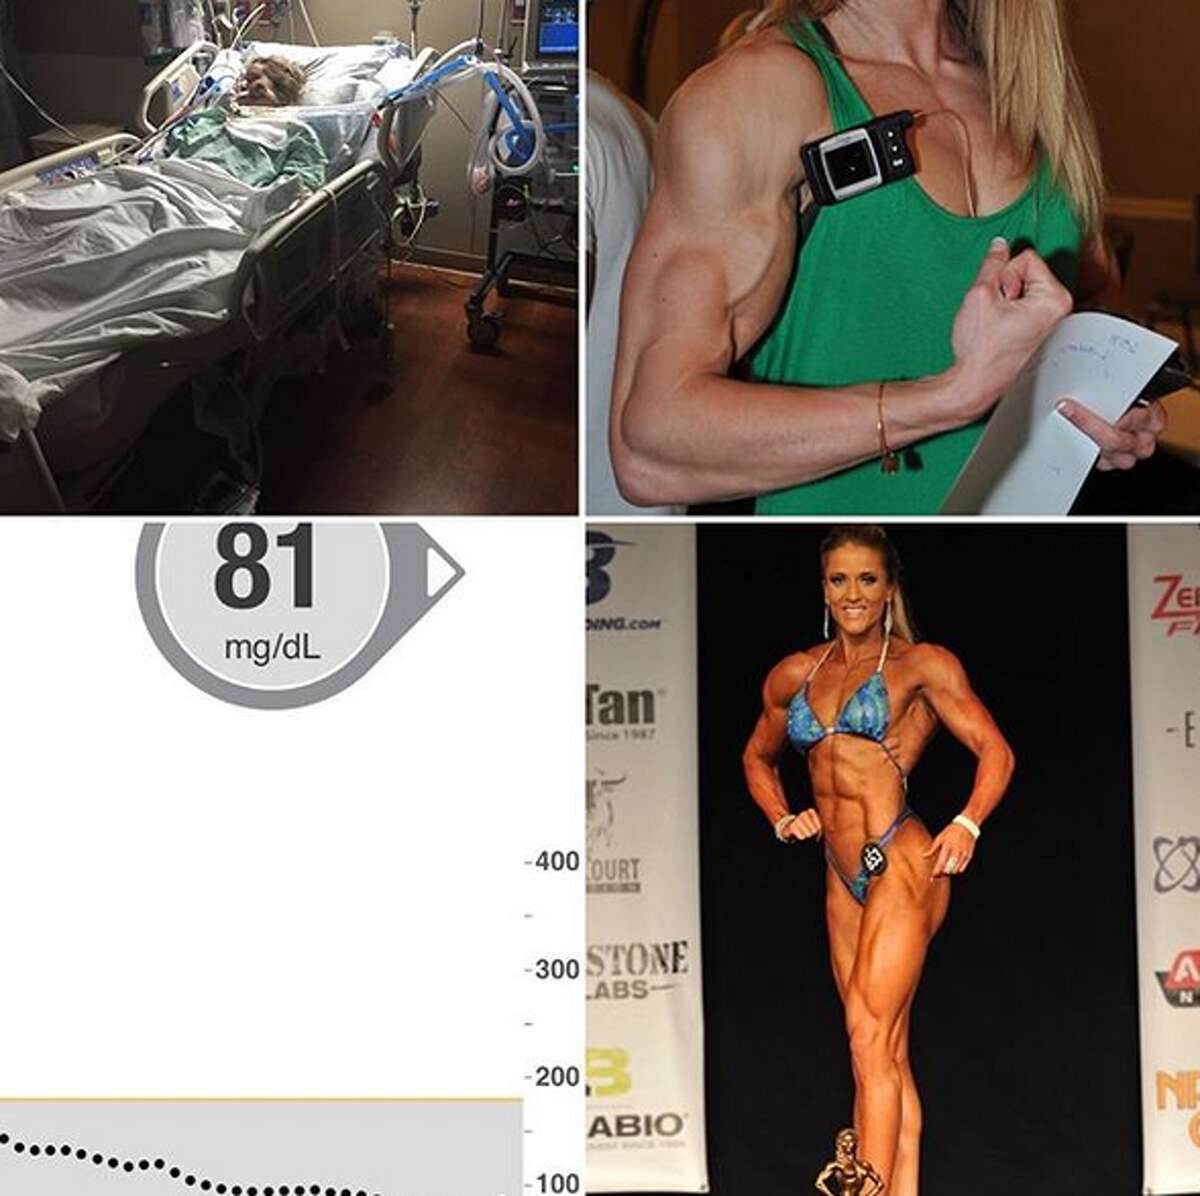 Lauren Howe, 31, is a San Antonio resident with Type 1 diabetes who is making strides in her bodybuilding goals.